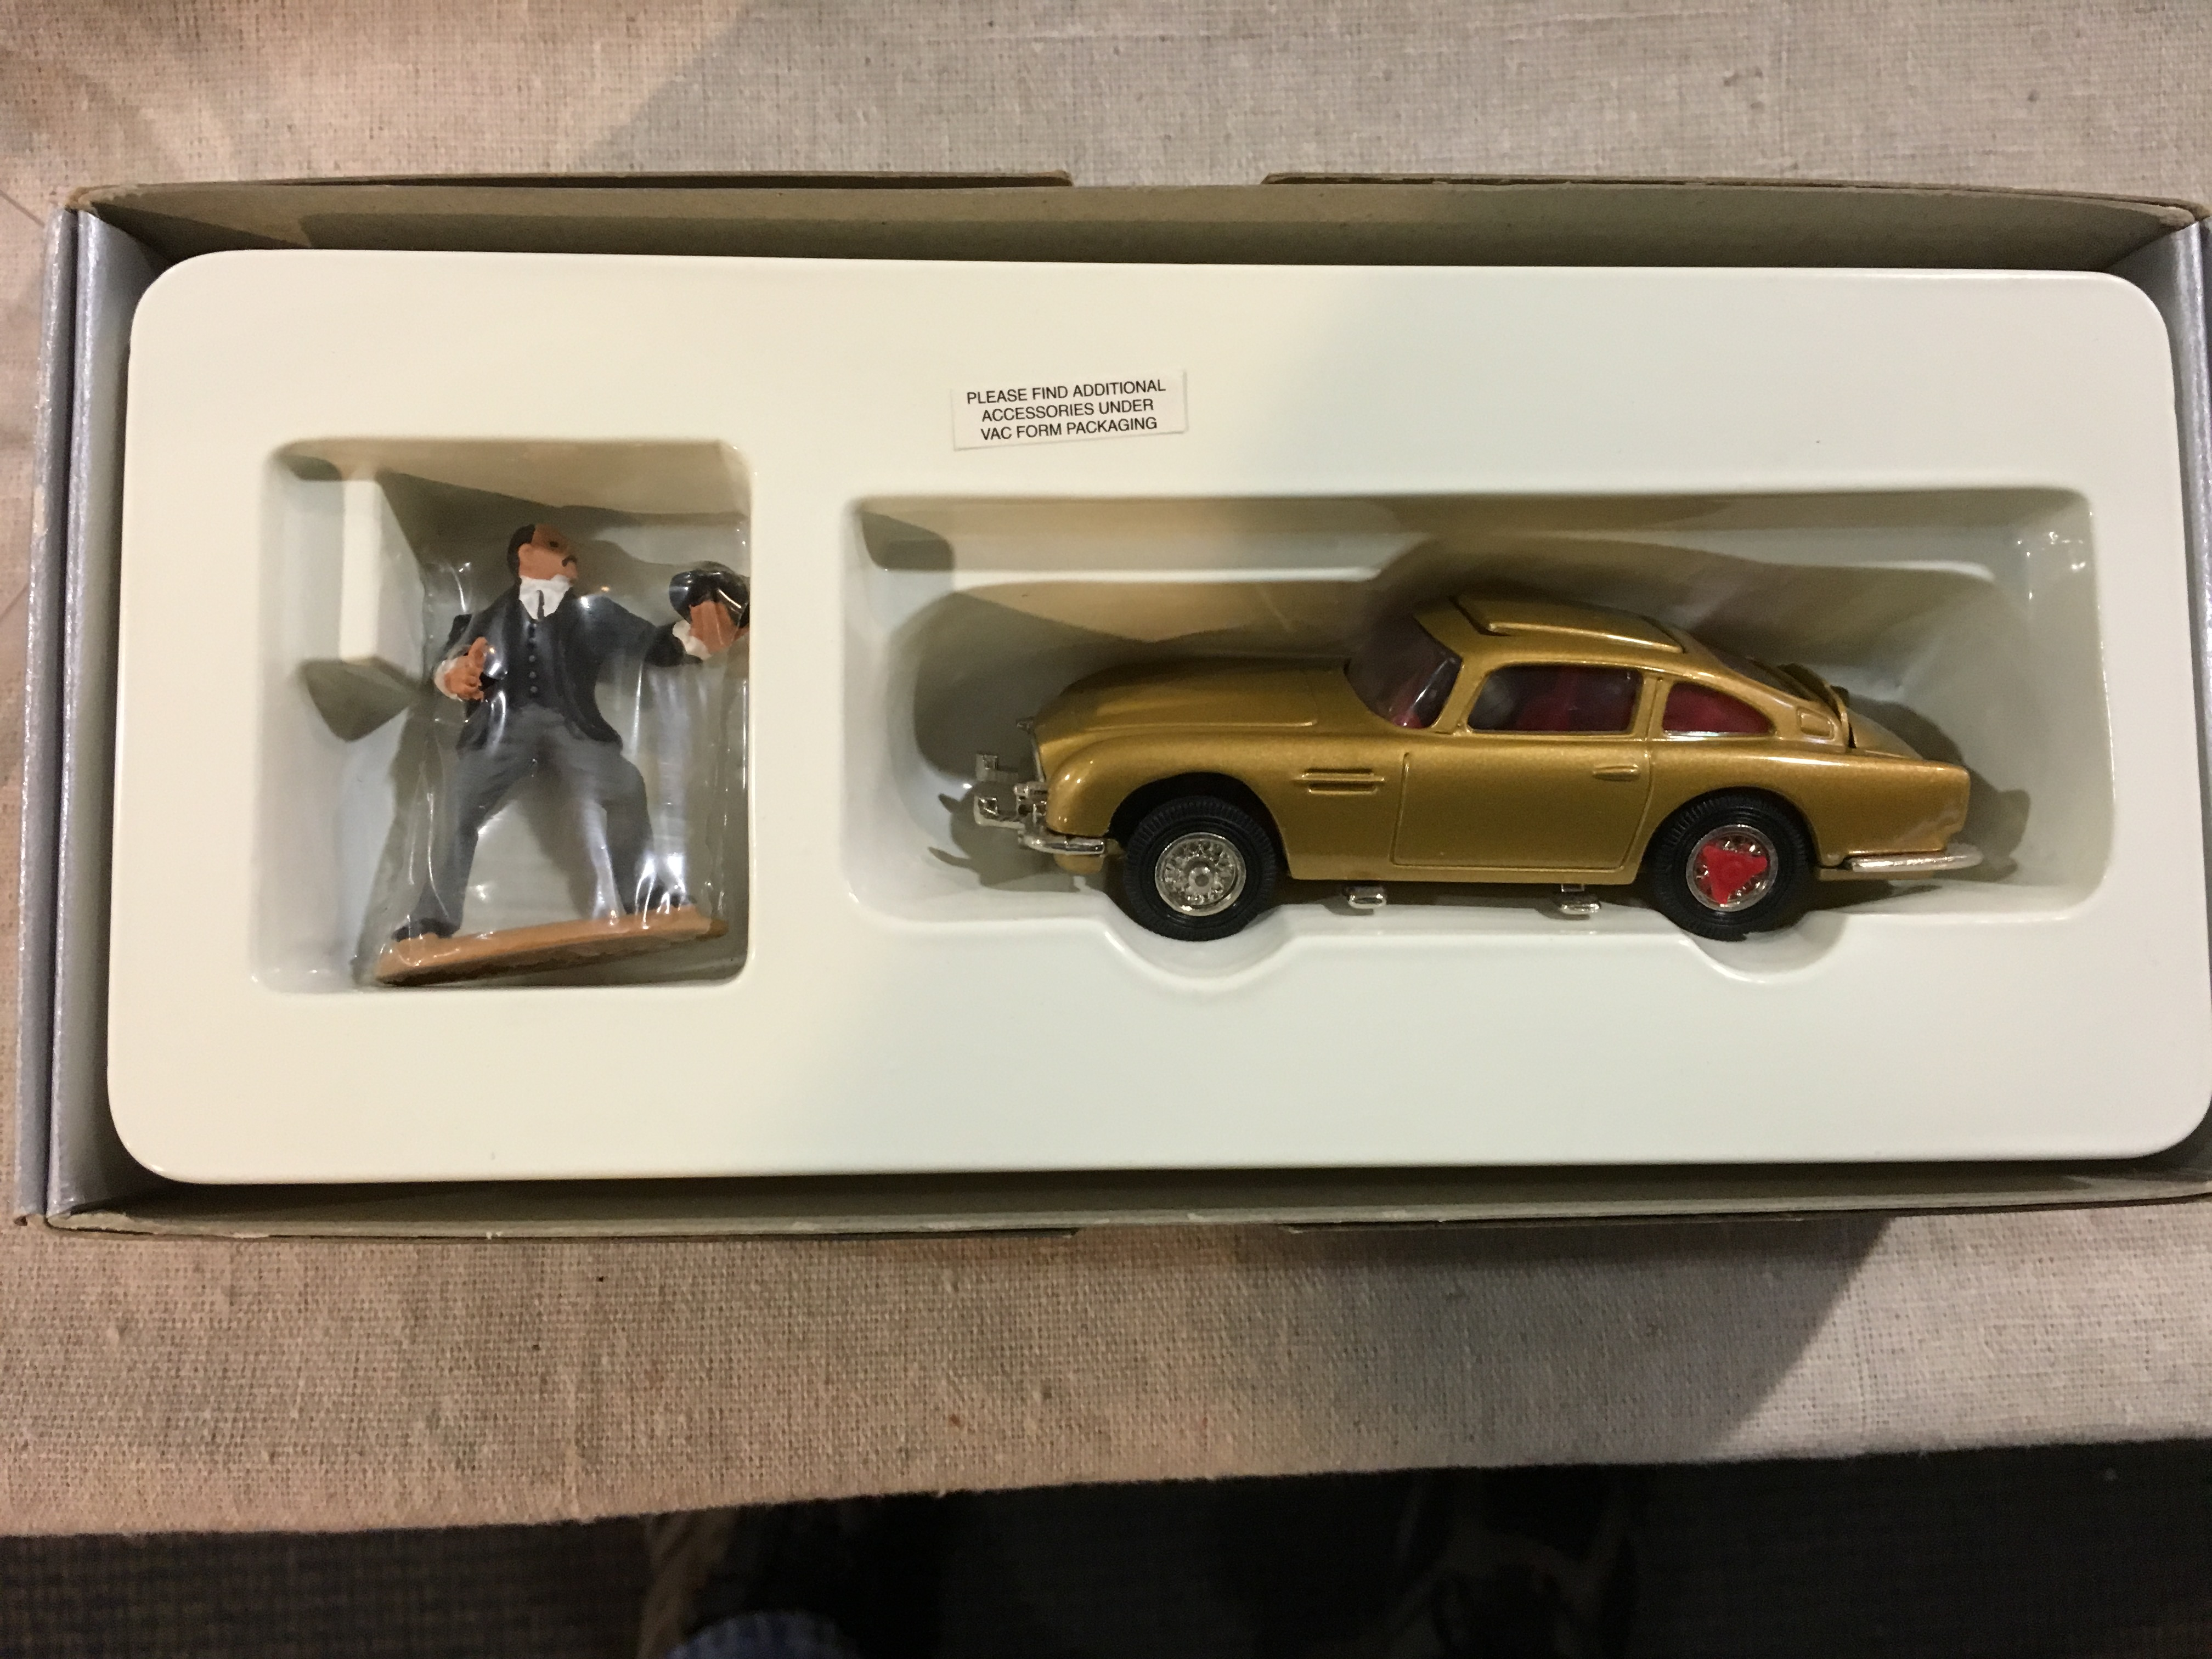 aston martin james bond edition corgi - sports & classics